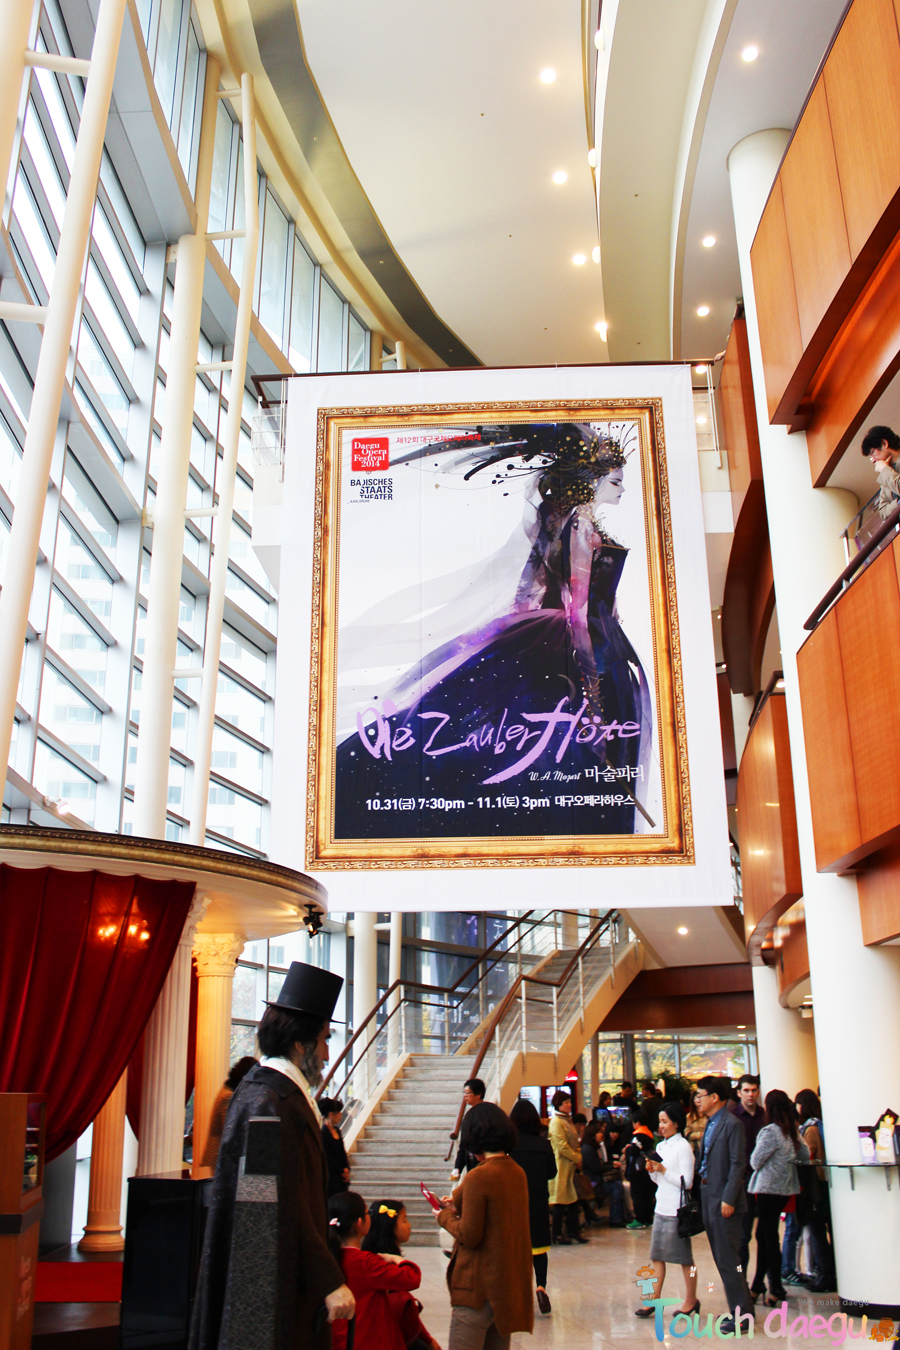 The hall of Daegu Opera House